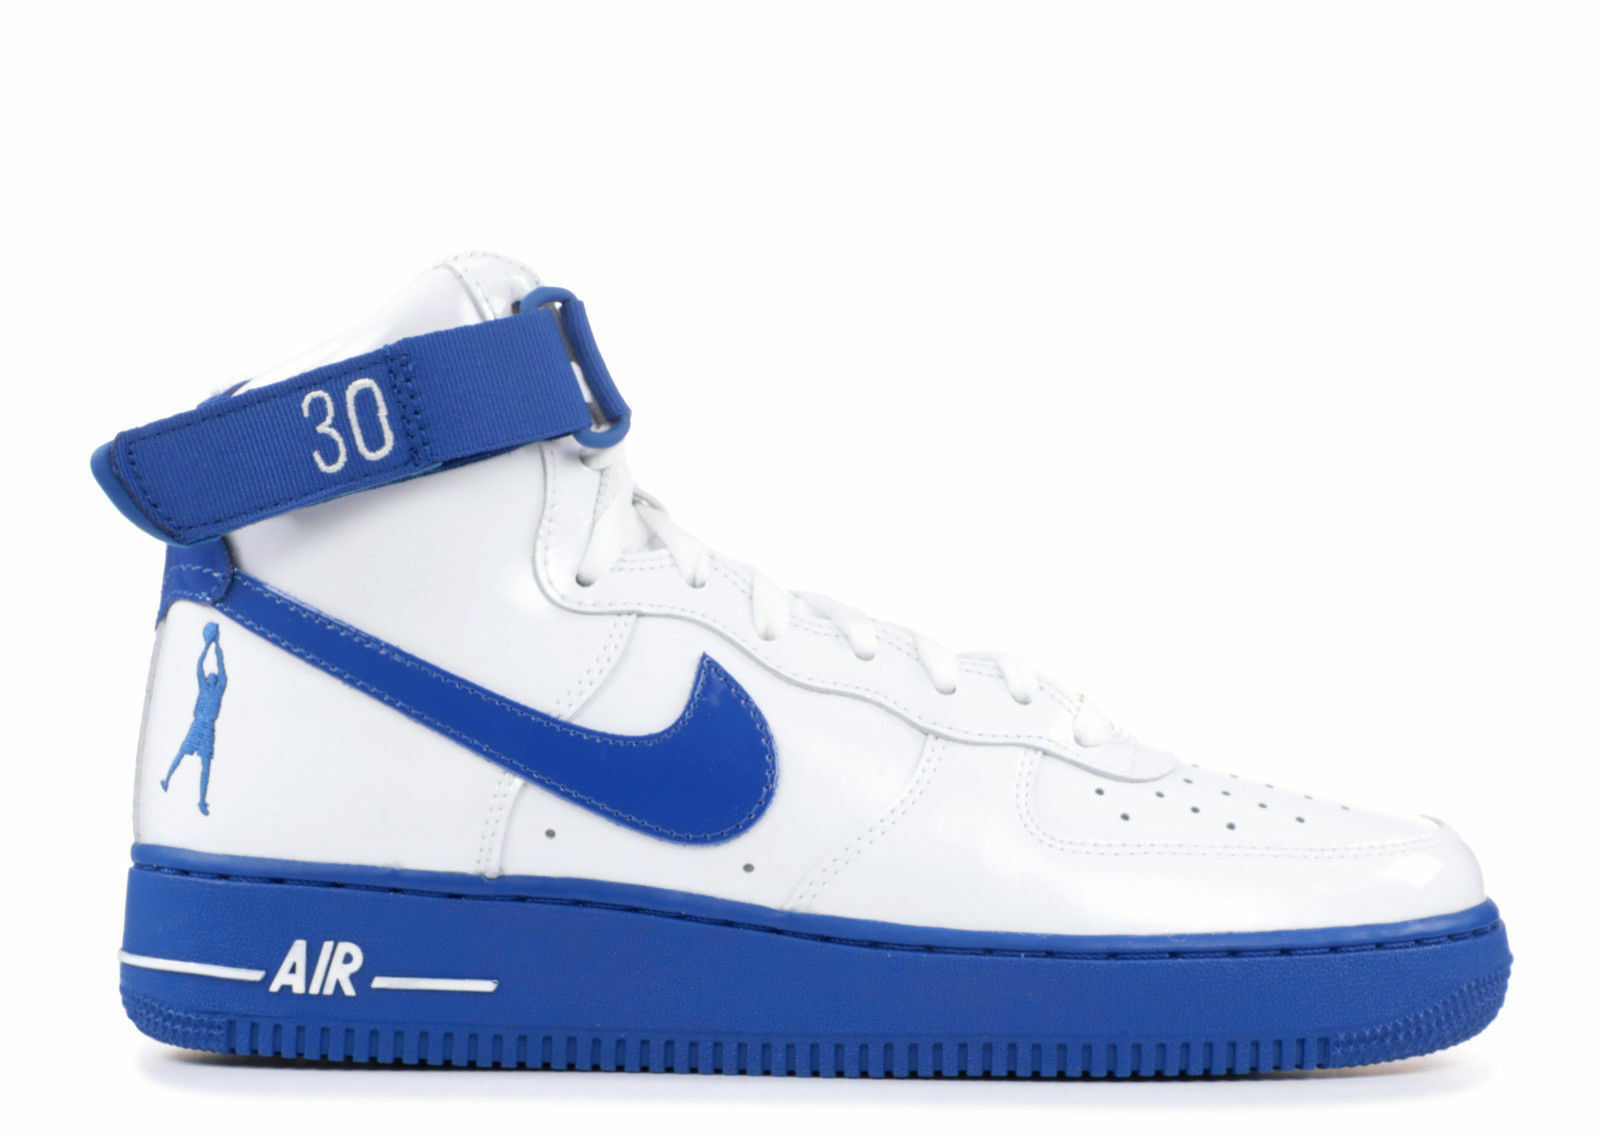 Nike Air Force 1 High Retro CT16 QS SHEED schuhe Rude Awakening AQ4229-100